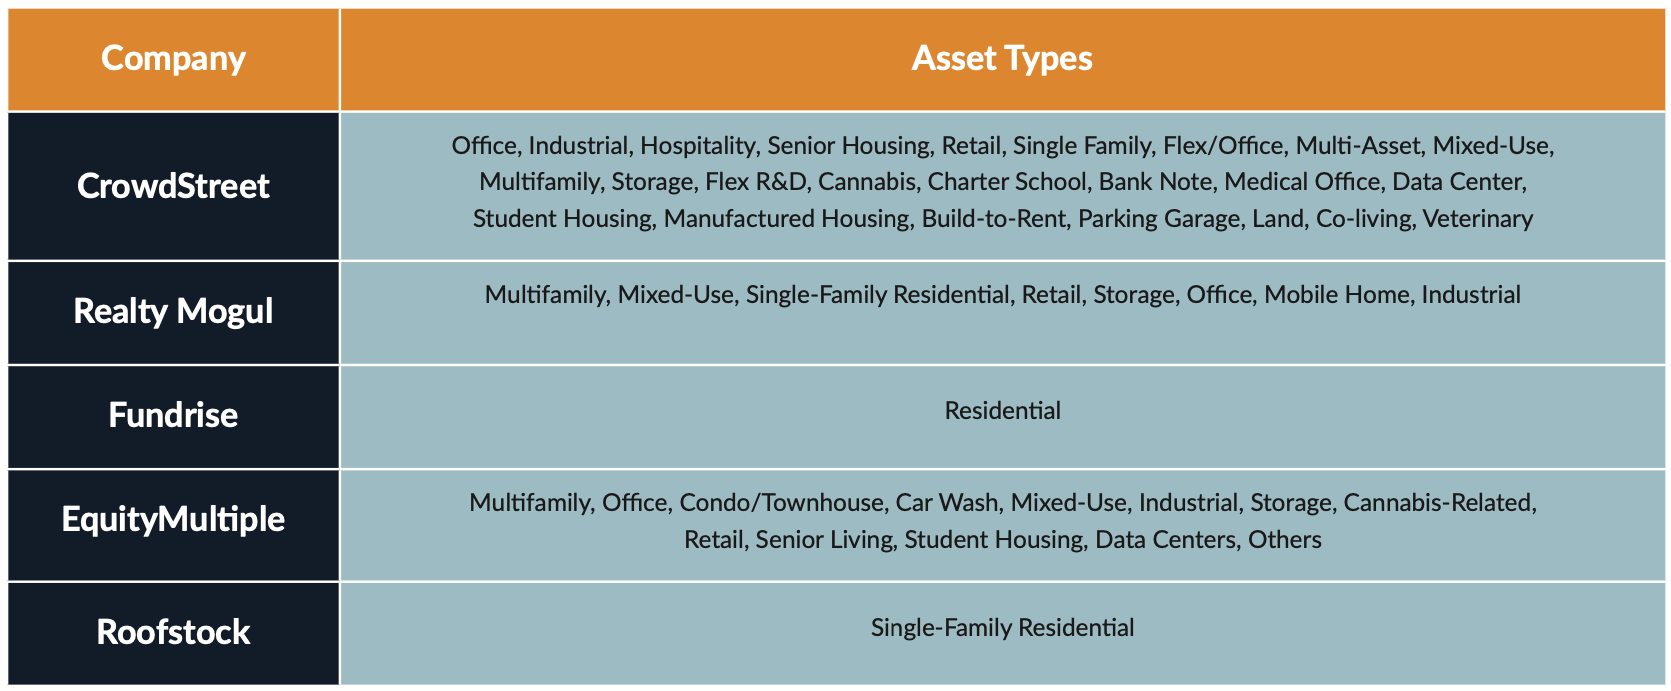 What type of asset types do various online real estate investing platforms like CrowdStreet, Realty Mogul, Fundrise, EquityMultiple, and Roofstock offer